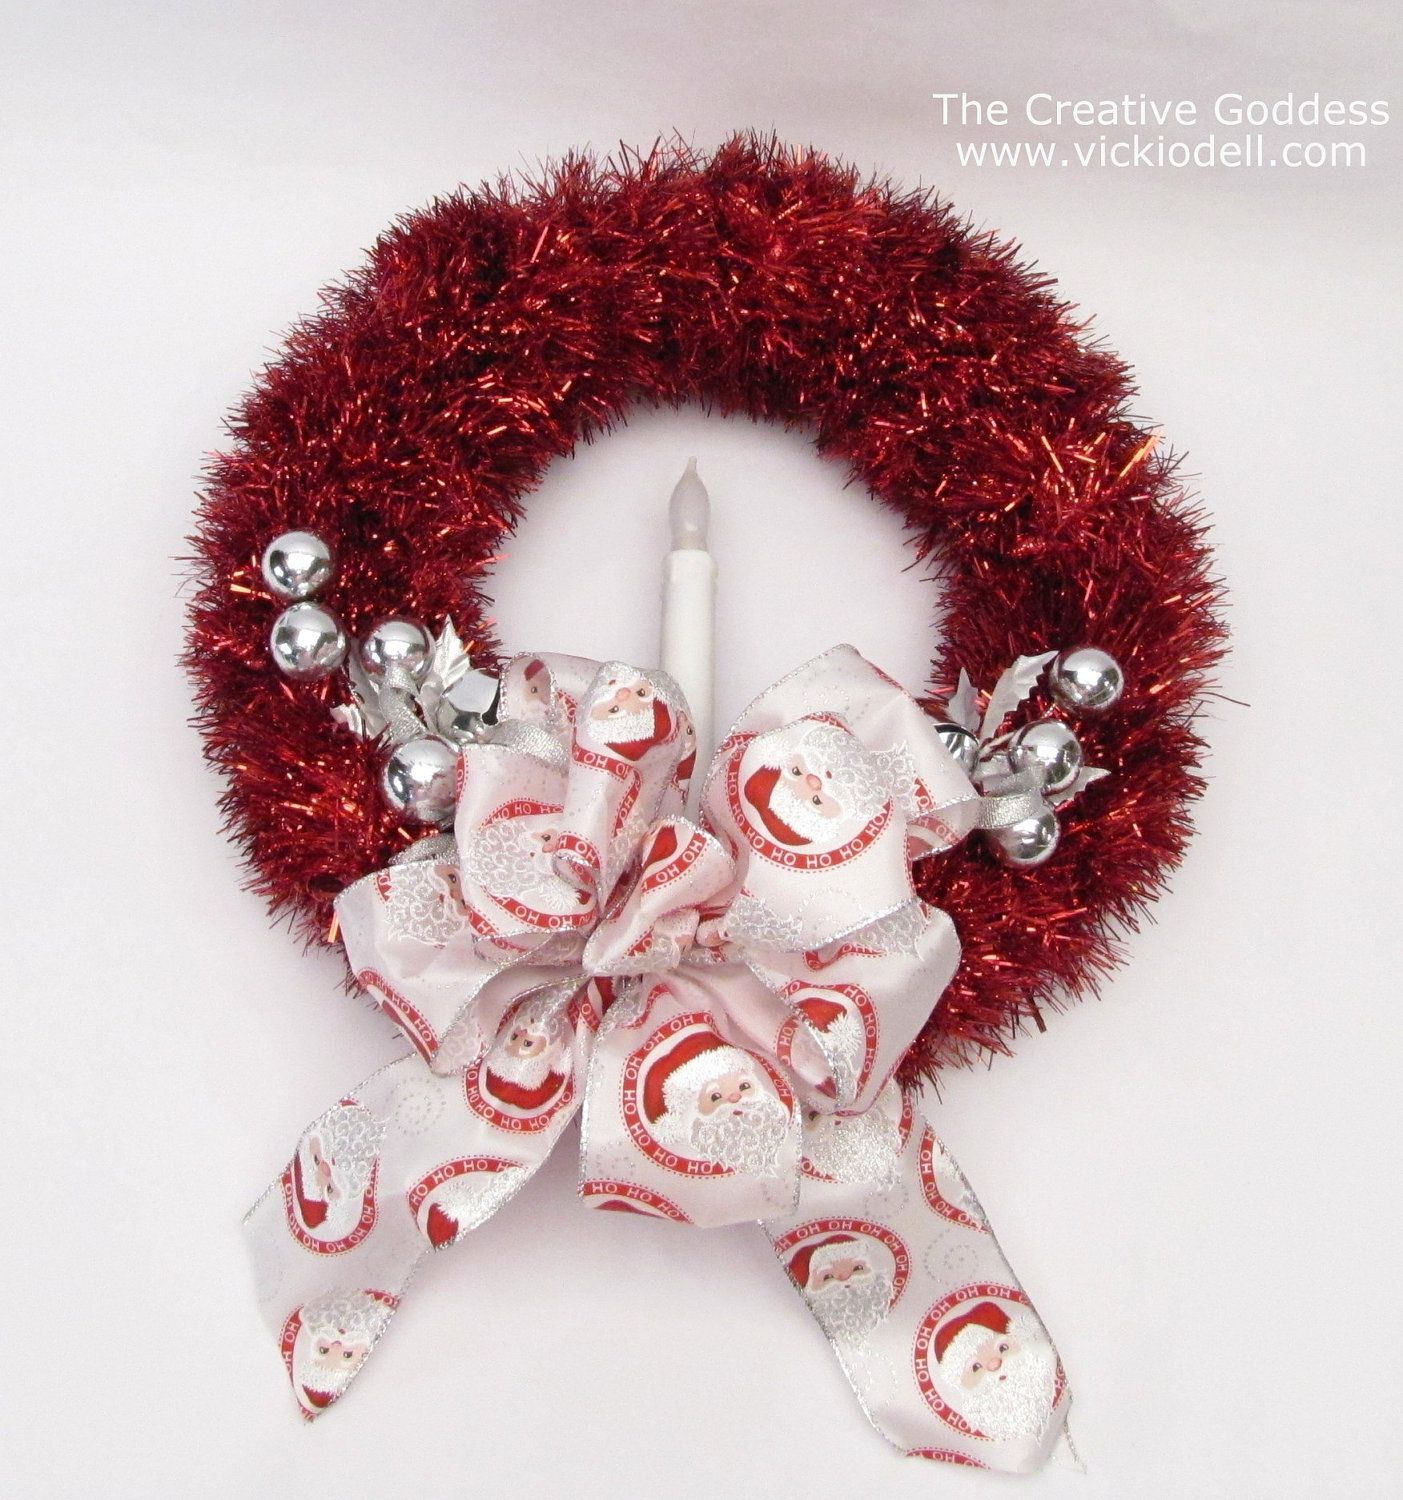 14 Inch Vintage Inspired Red Tinsel Christmas Wreath With Santa Bow Silver Ornaments B O Candle 19 00 Via Etsy